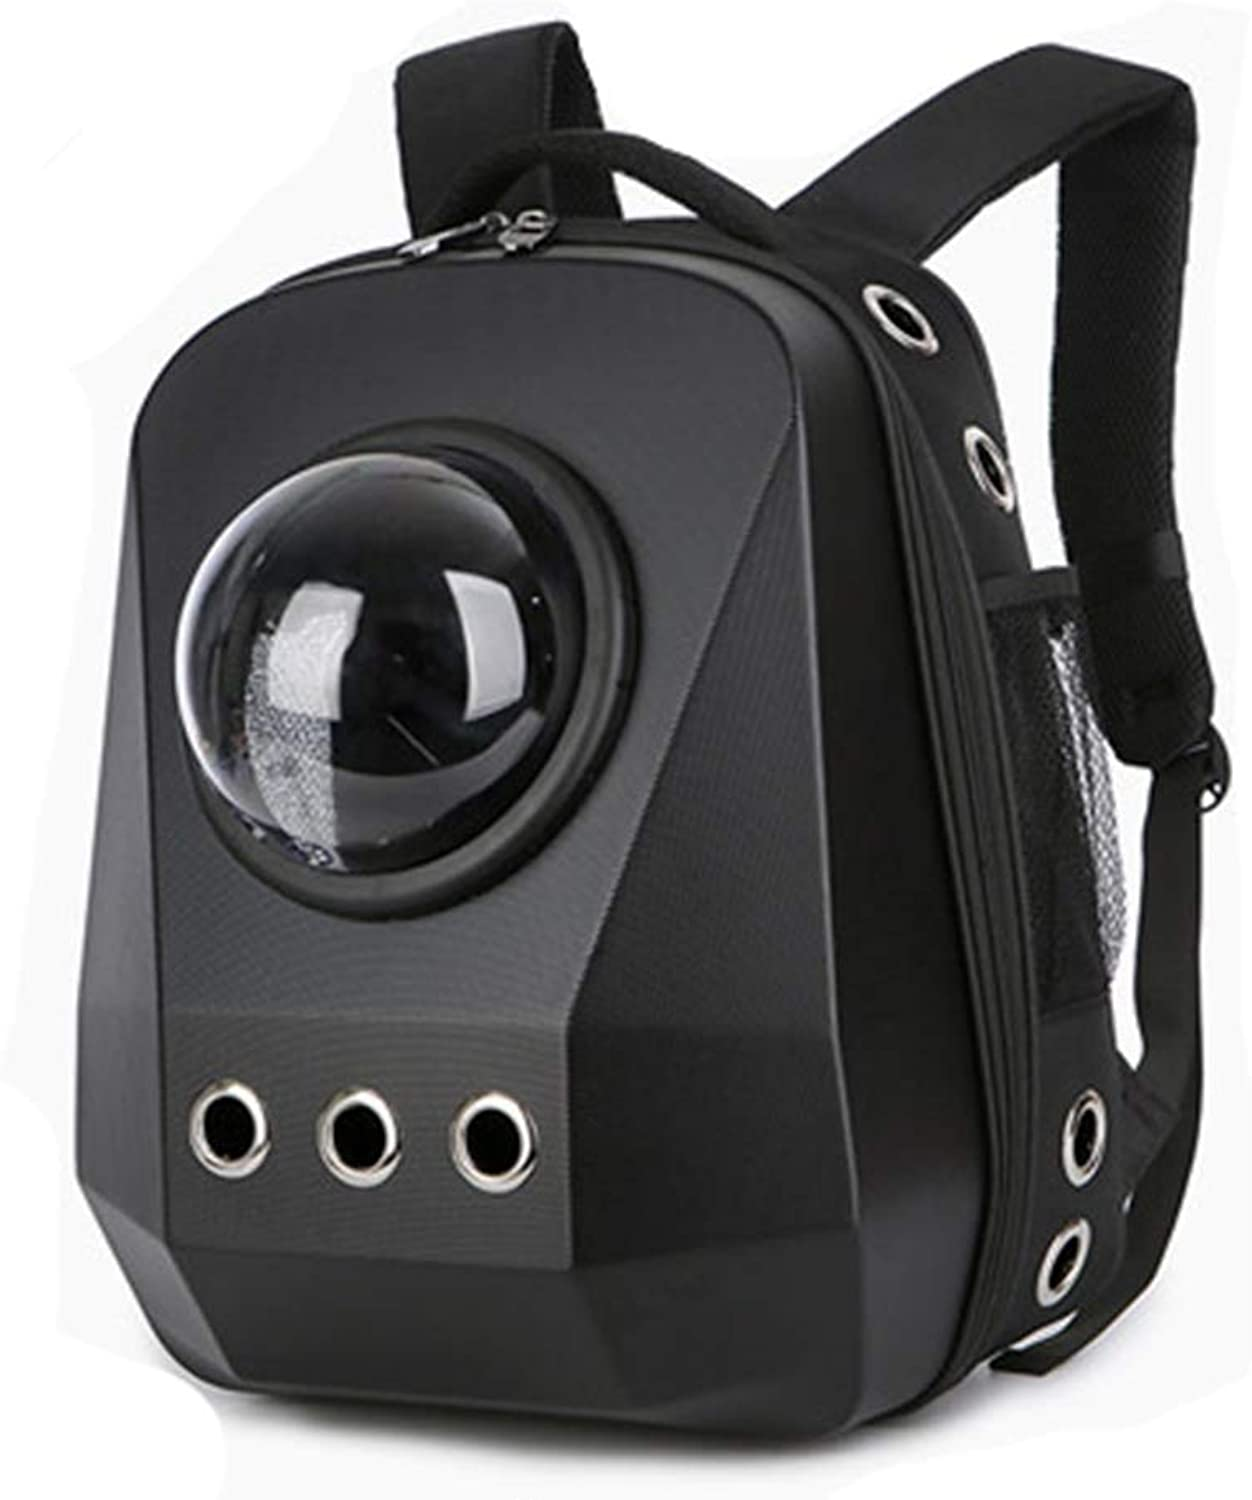 Backpack Space Capsule Portable Waterproof Breathable Suitable for Cats Within 8 kg, Dogs Within 6 kg Outdoor Travel Walking